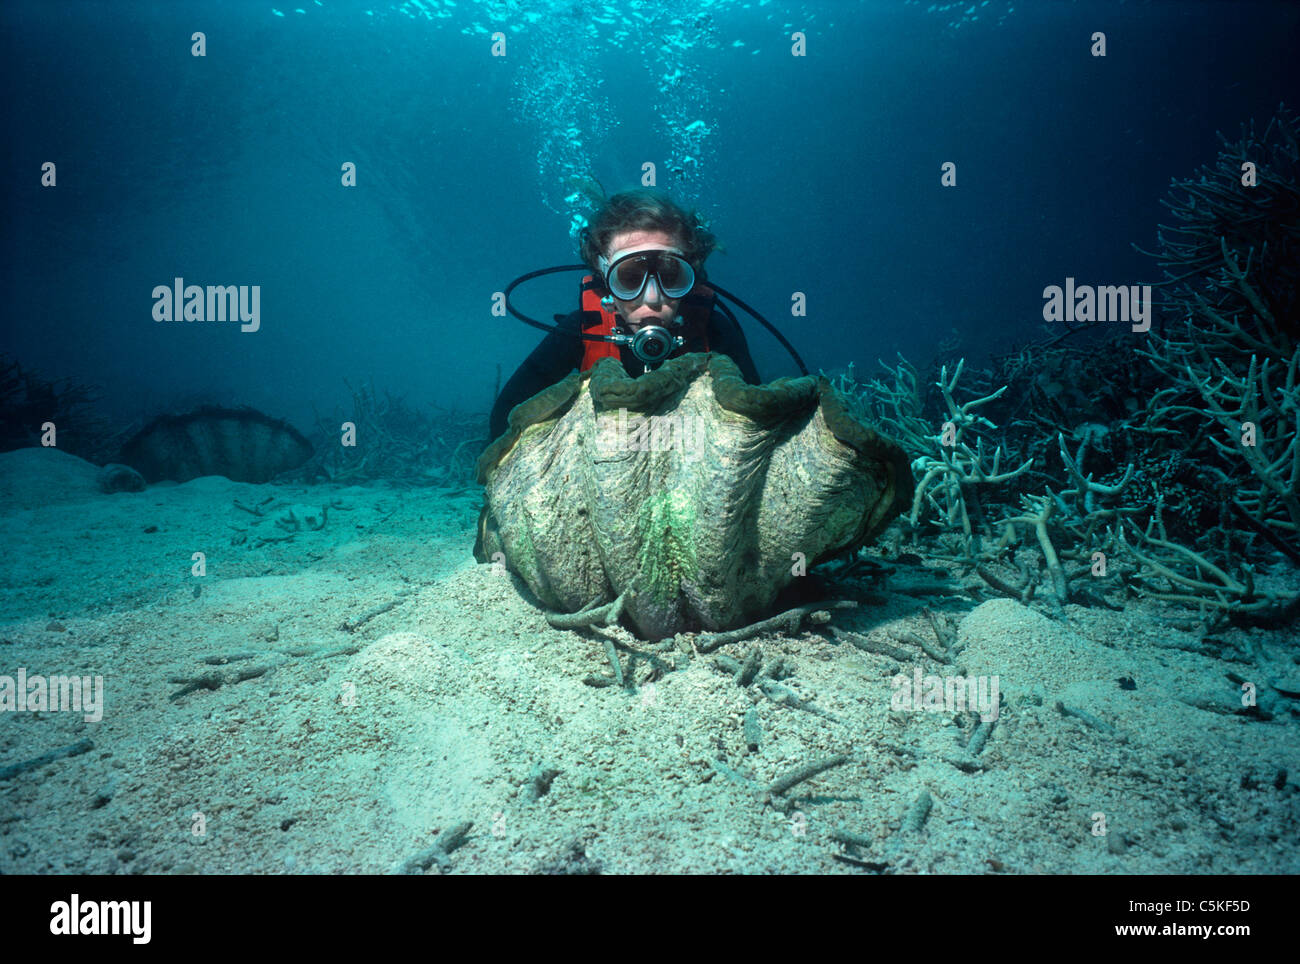 Diver examining a Giant Fluted Clam (Tridacna squamosa) on a coral reef. Palau, Micronesia - Pacific Ocean - Stock Image